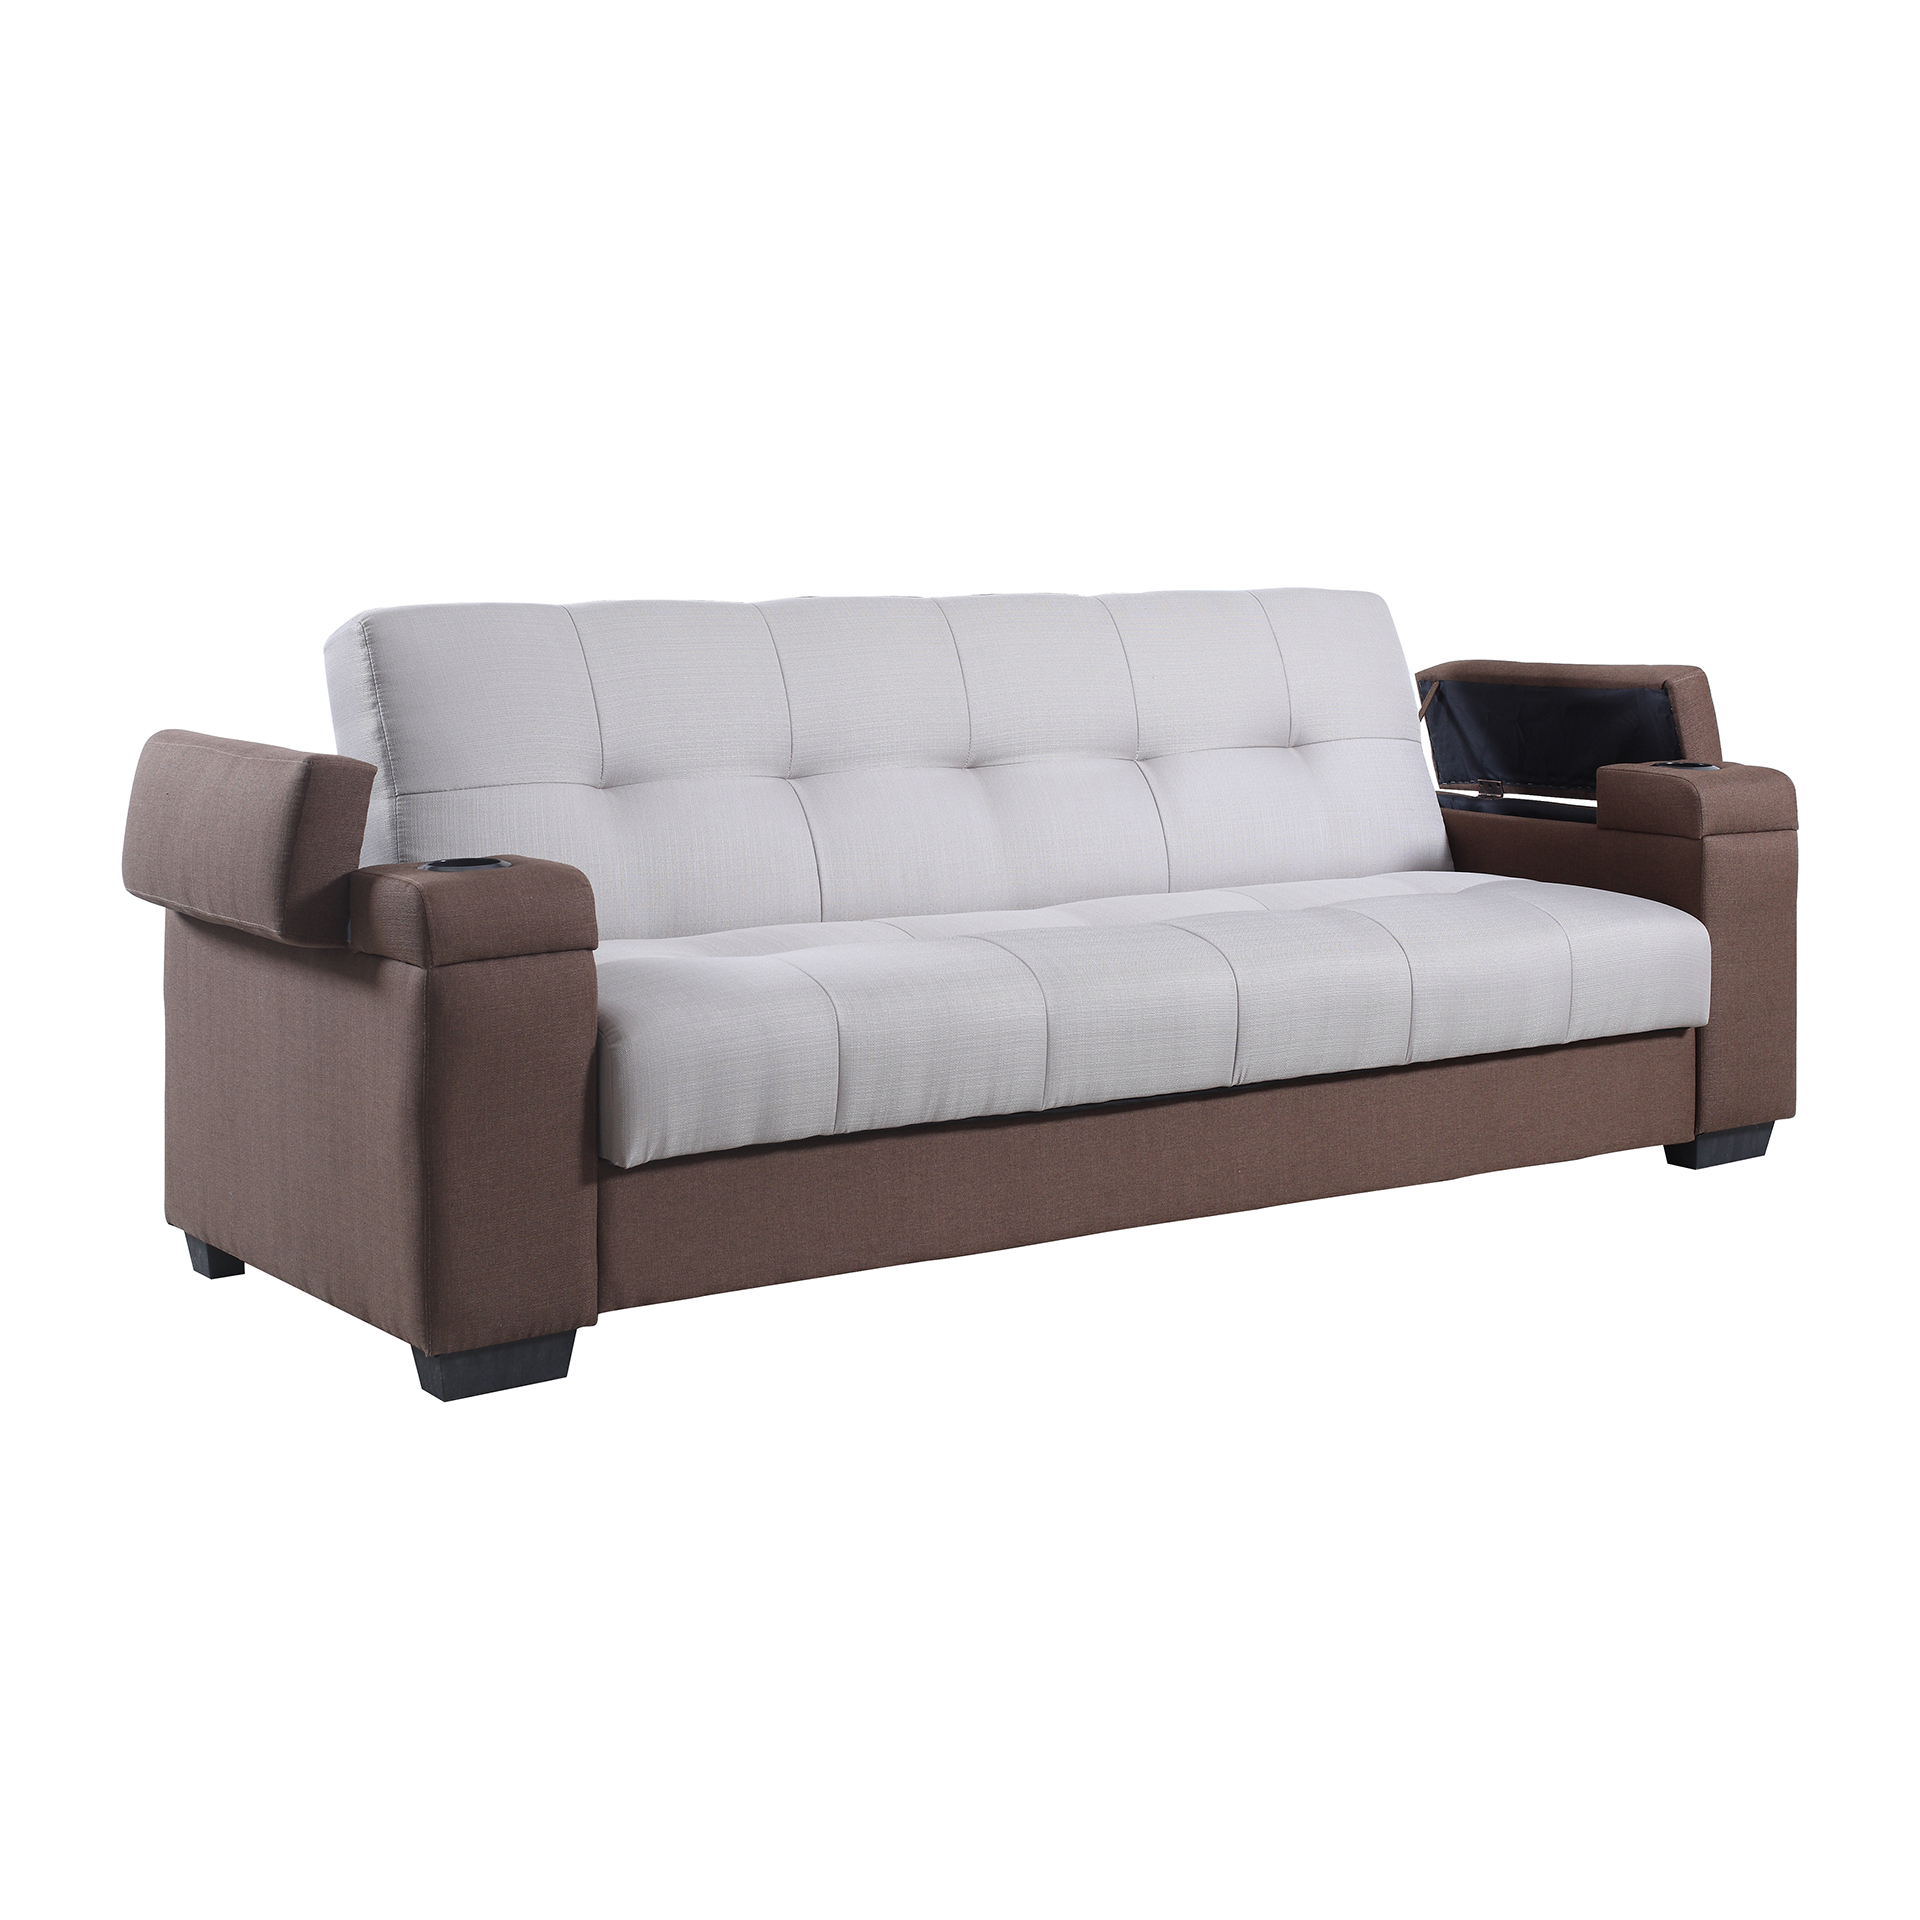 Recliner sofa bed aldo manual reclining sofa mocha for Sofa bed in philippines